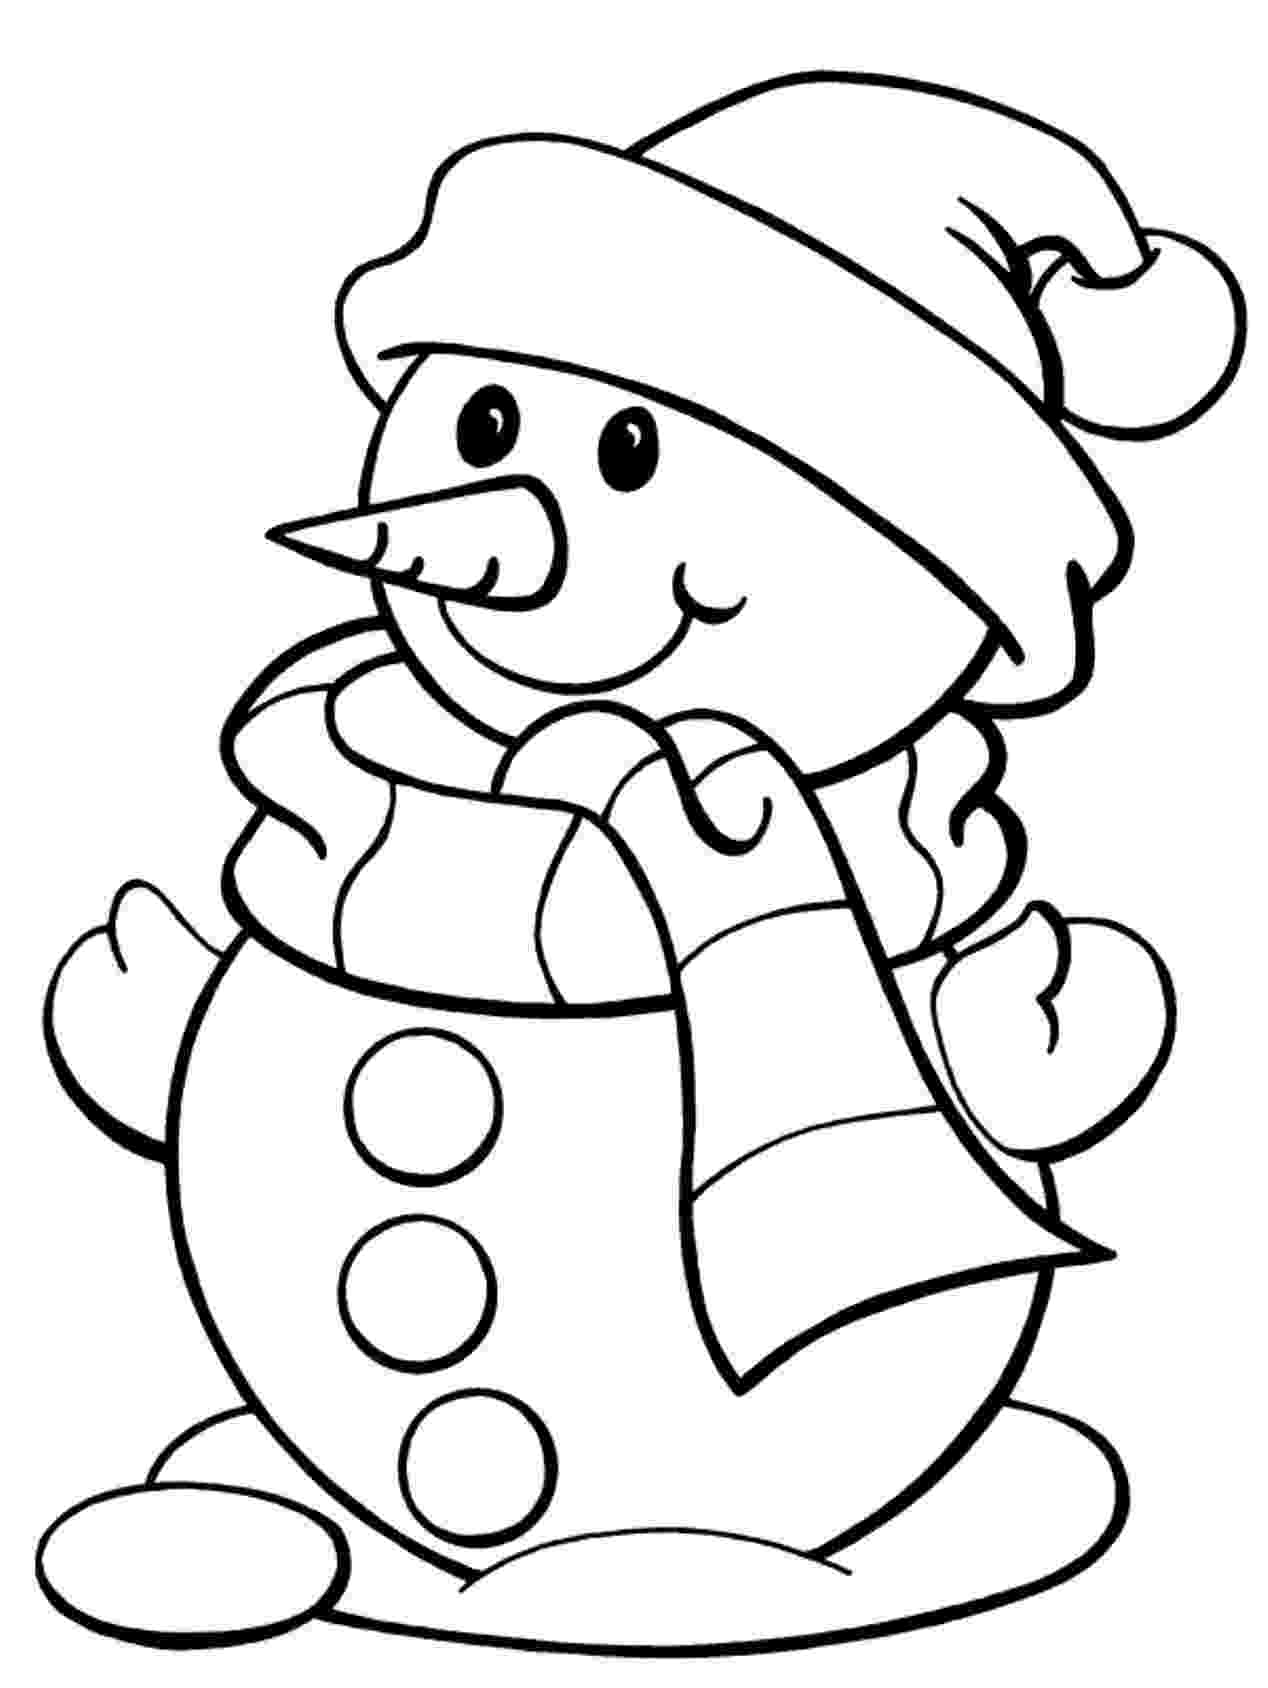 winter printable coloring pages free free winter coloring page artzycreationscom winter coloring printable free pages